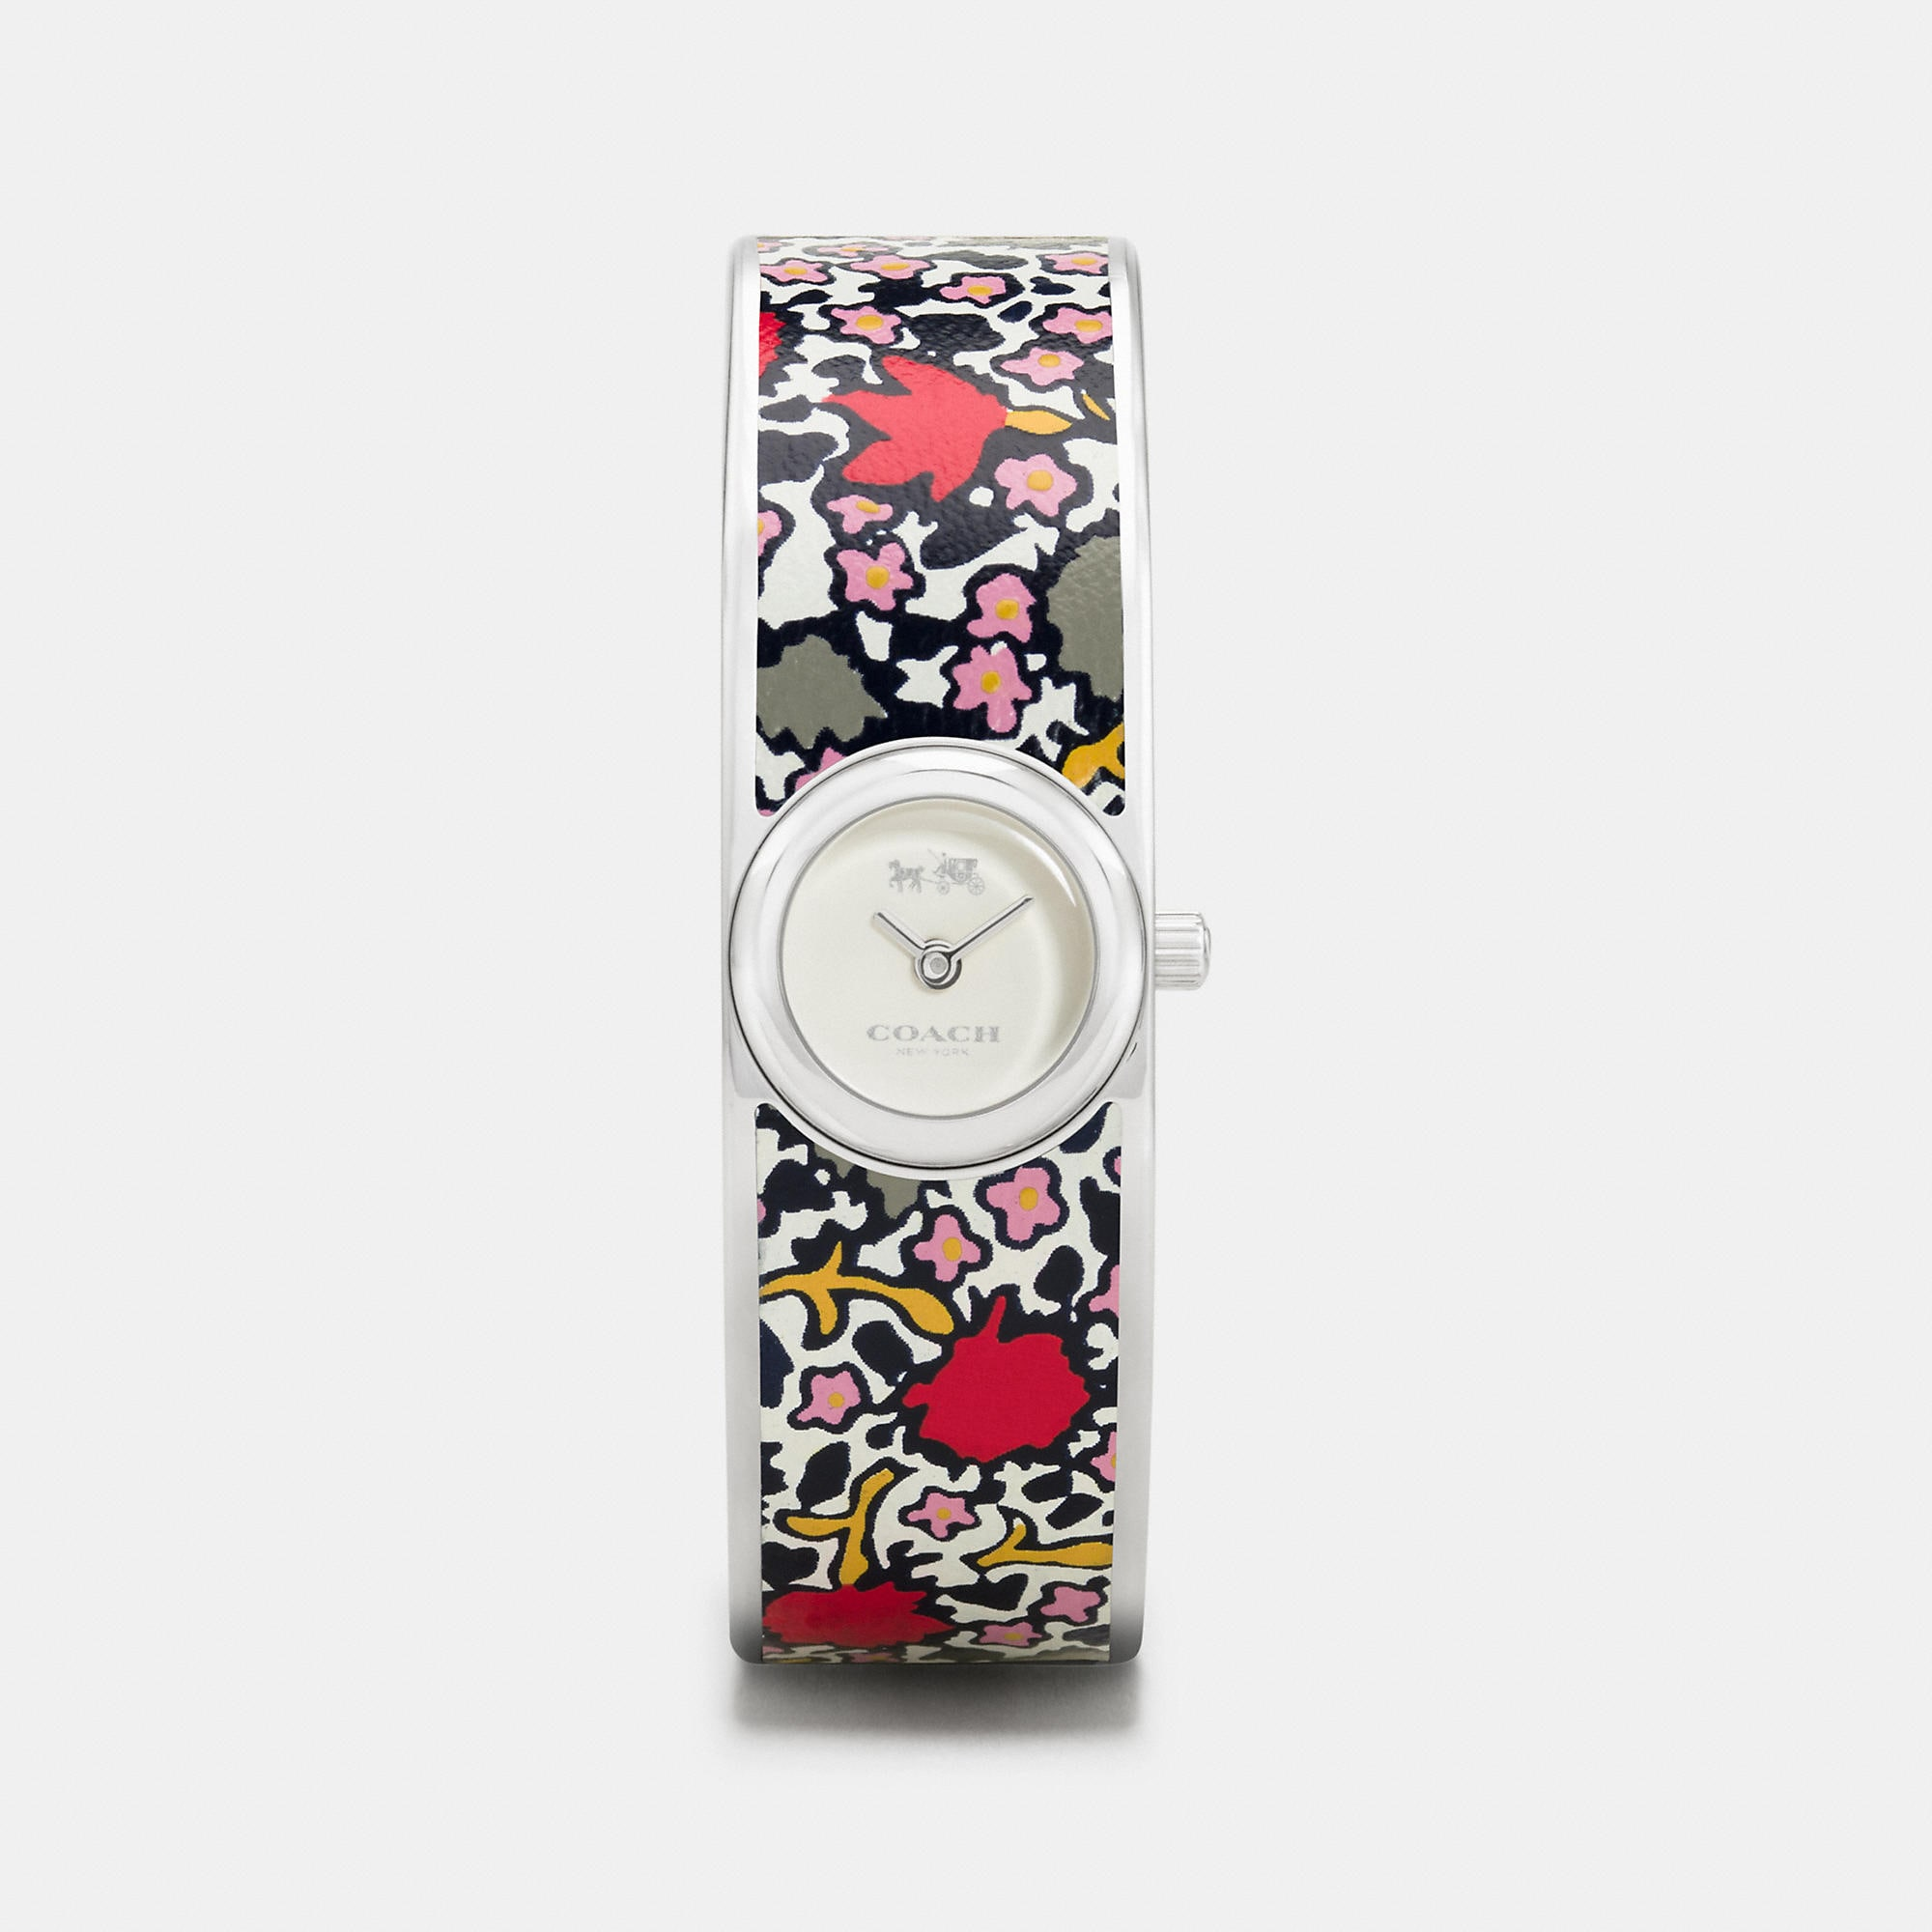 Coach Scout Stainless Steel Printed Leather Inlay Bangle Watch